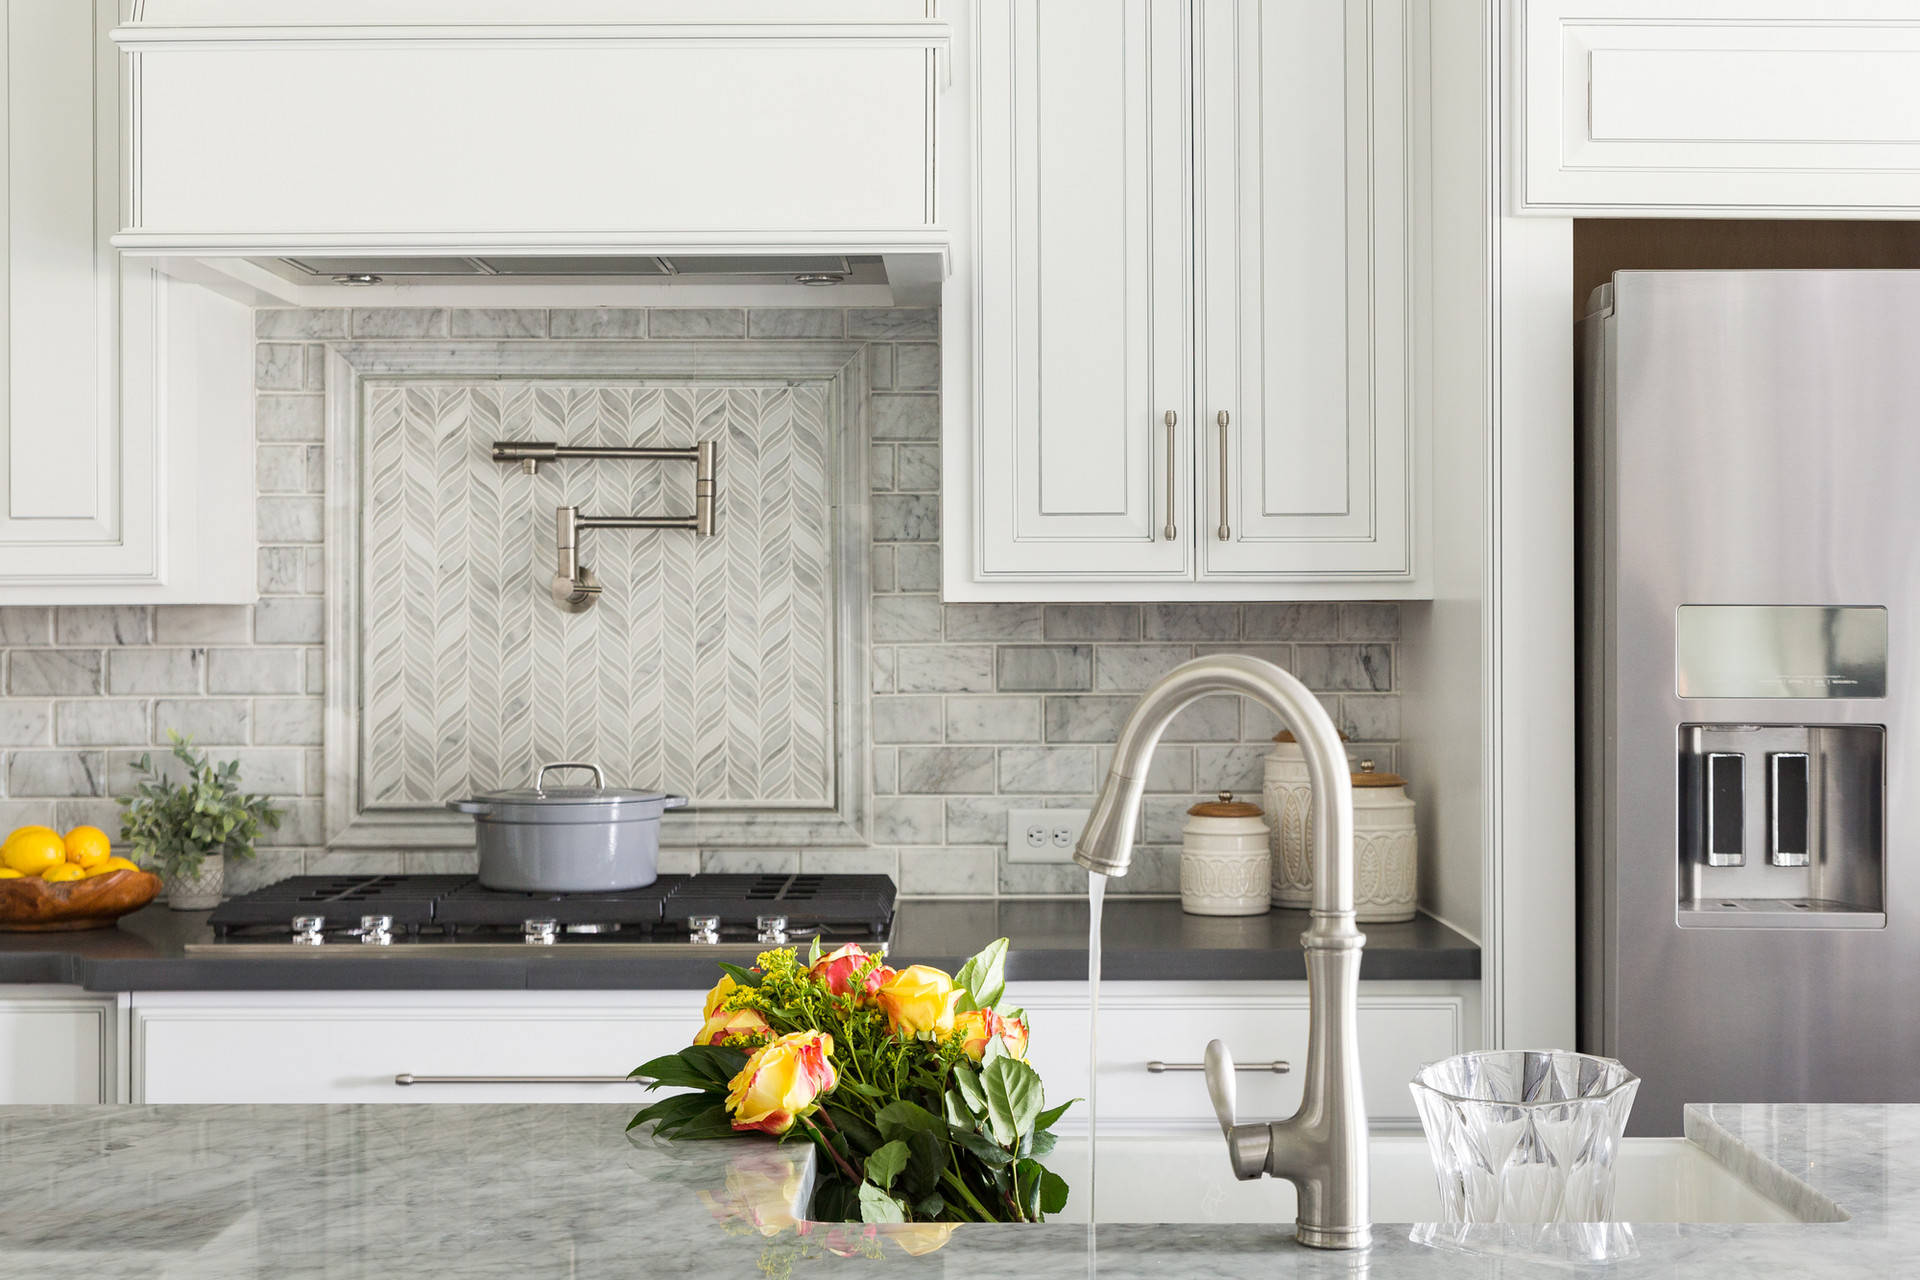 Kitchen Backsplash Design.jpg